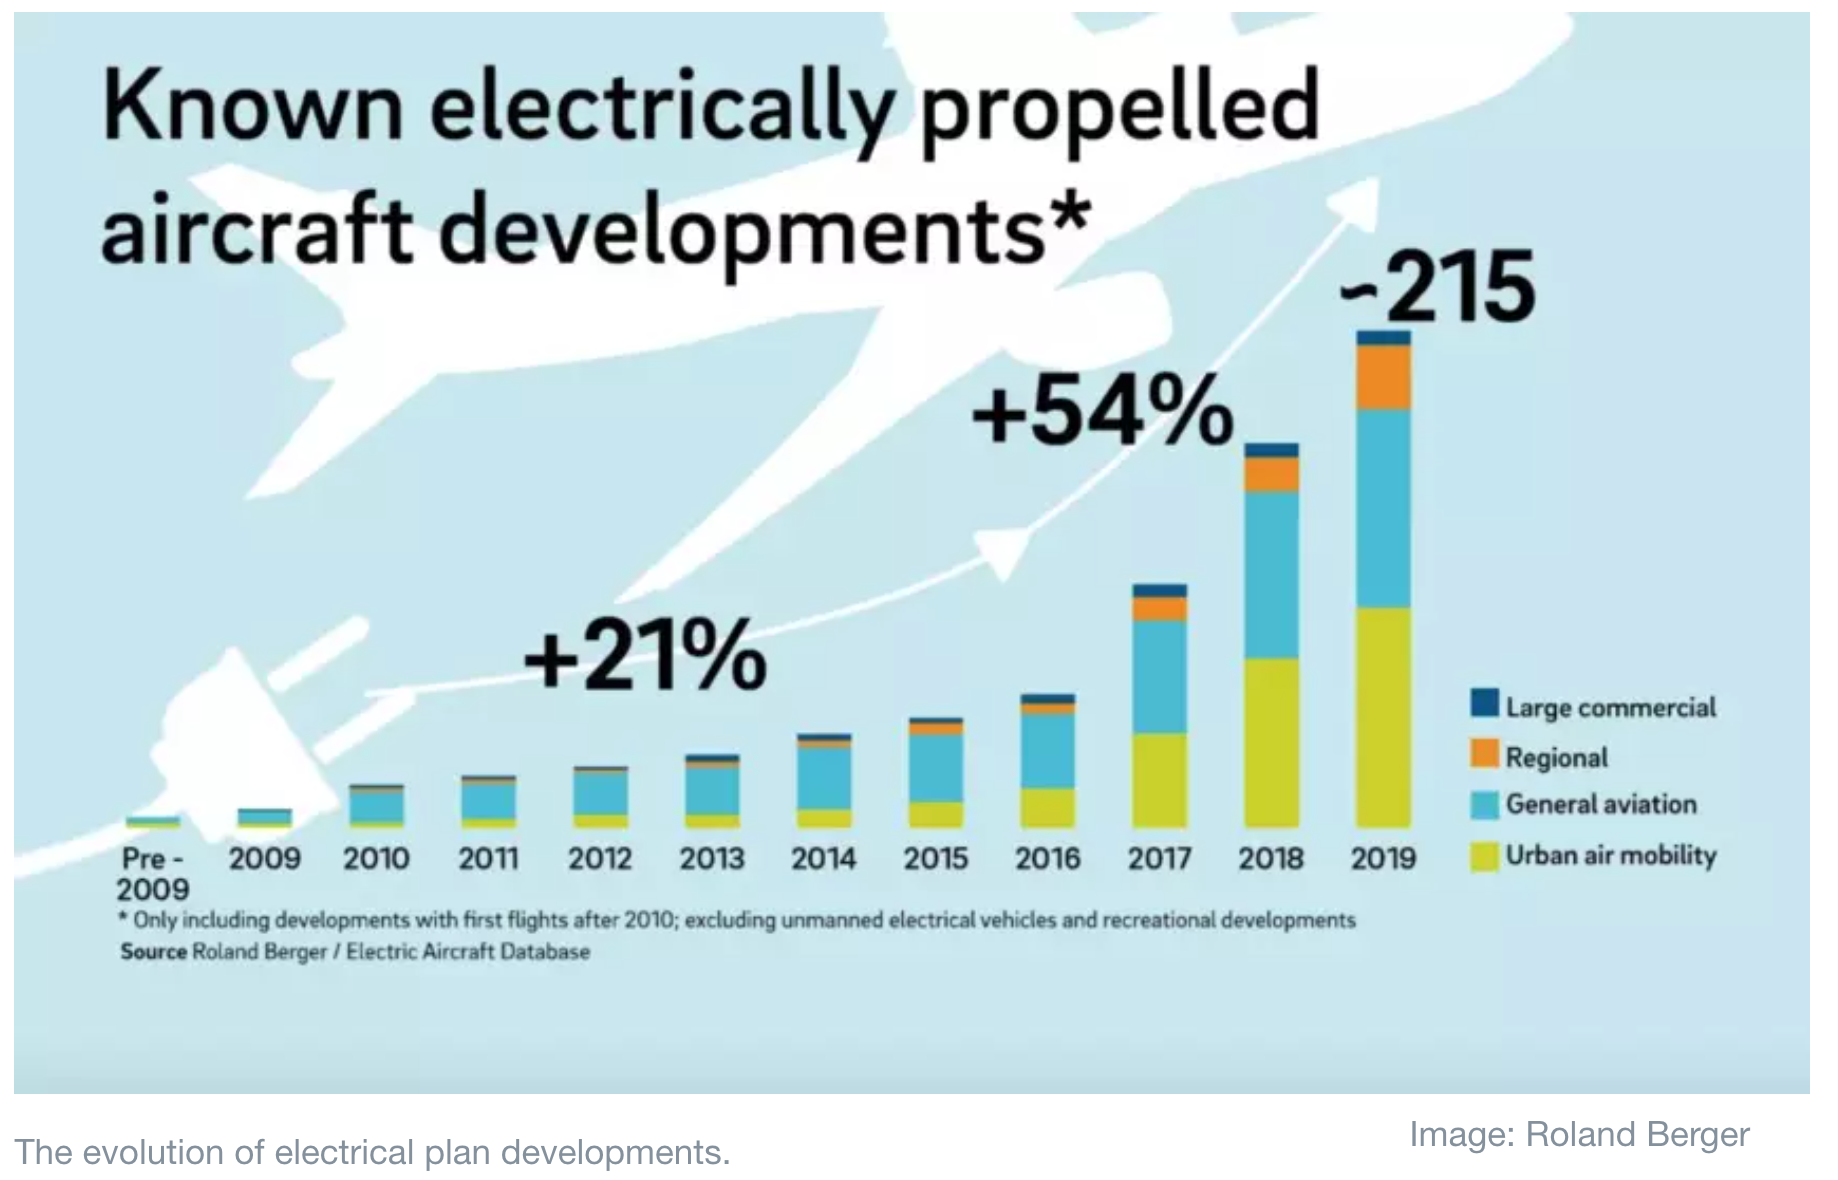 The evolution of electrical plan developments.